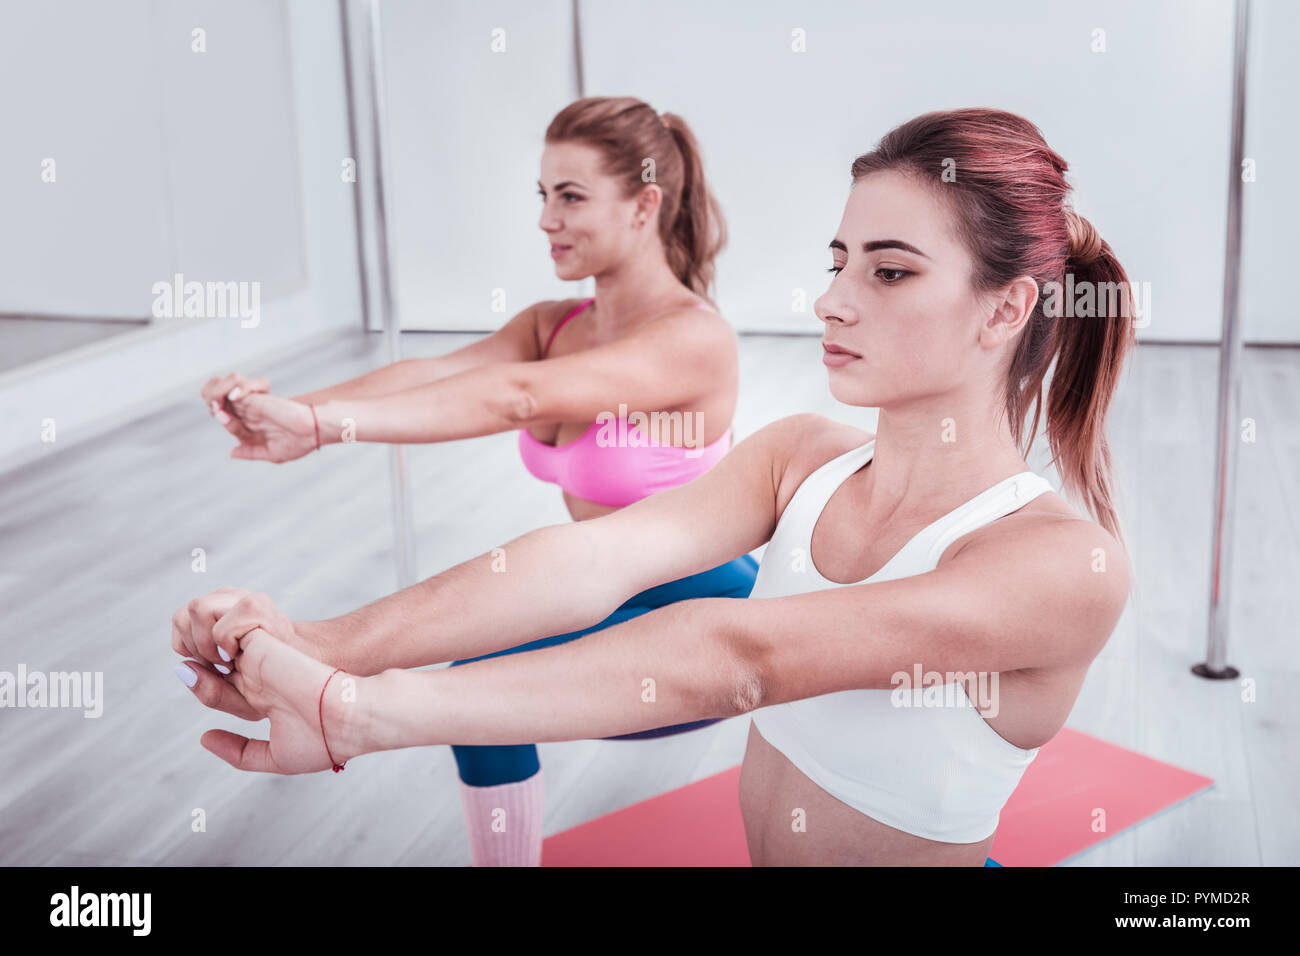 Two women breathing slowly while standing in asana training together - Stock Image